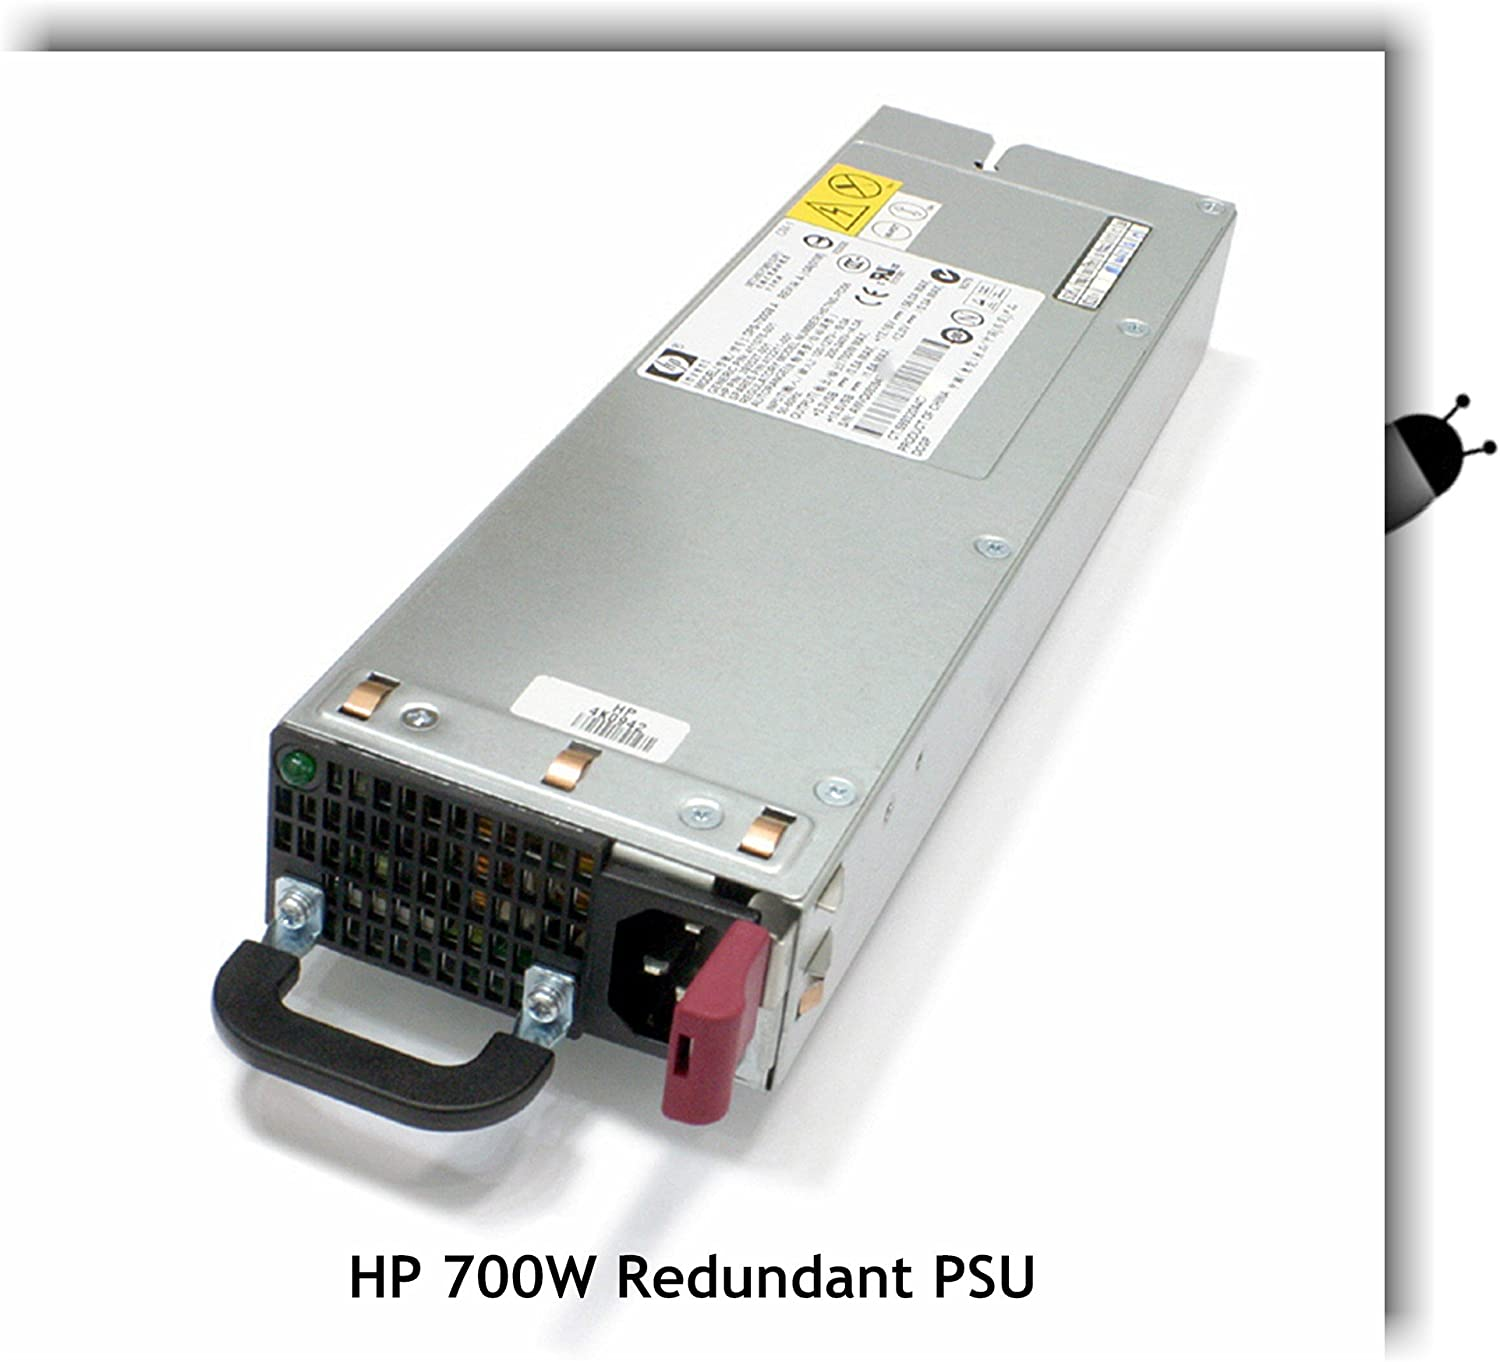 700 Watt HP / Compaq Hot Plug Redundant Power Supply For ProLiant DL360G5 411076-001 411076001 393527-001 412211-001